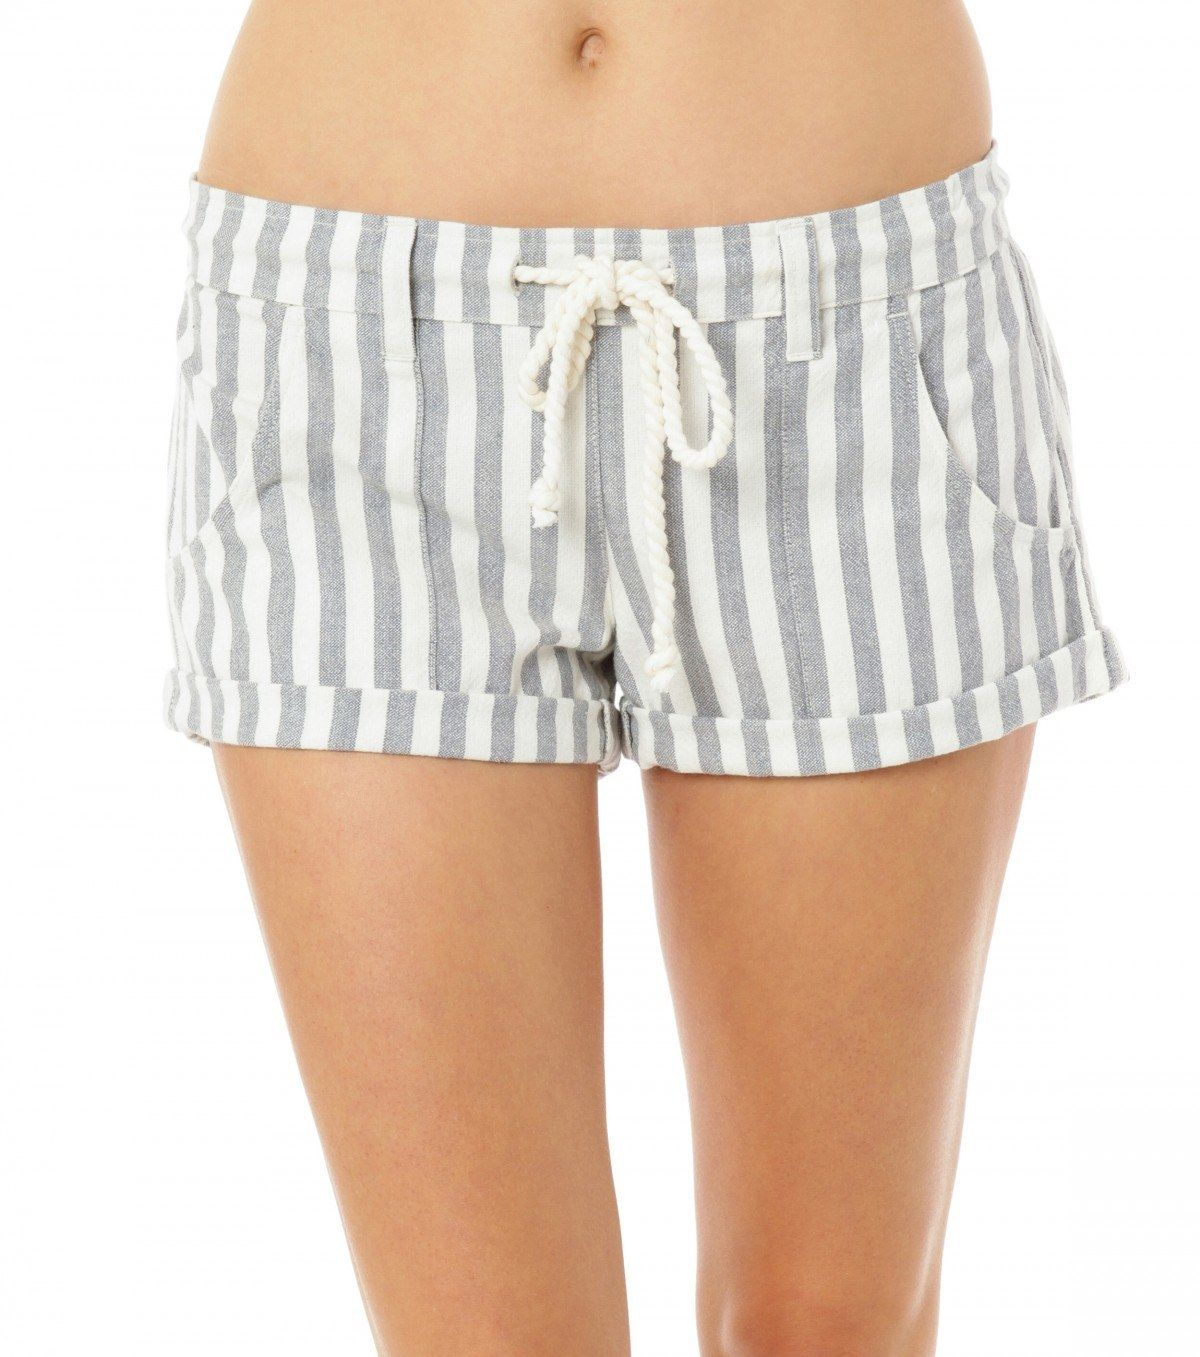 "<p>Get the ""I just stepped off a boat"" look with the O'Neill Malina printed stripe shorts.</p> <ul> <li>100% Cotton </li> <li>Yarn dye stripe woven short</li> <li>Drawstring at waist</li> <li>2"" Inseam</li> <li>Metal logo badge</li> </ul>"